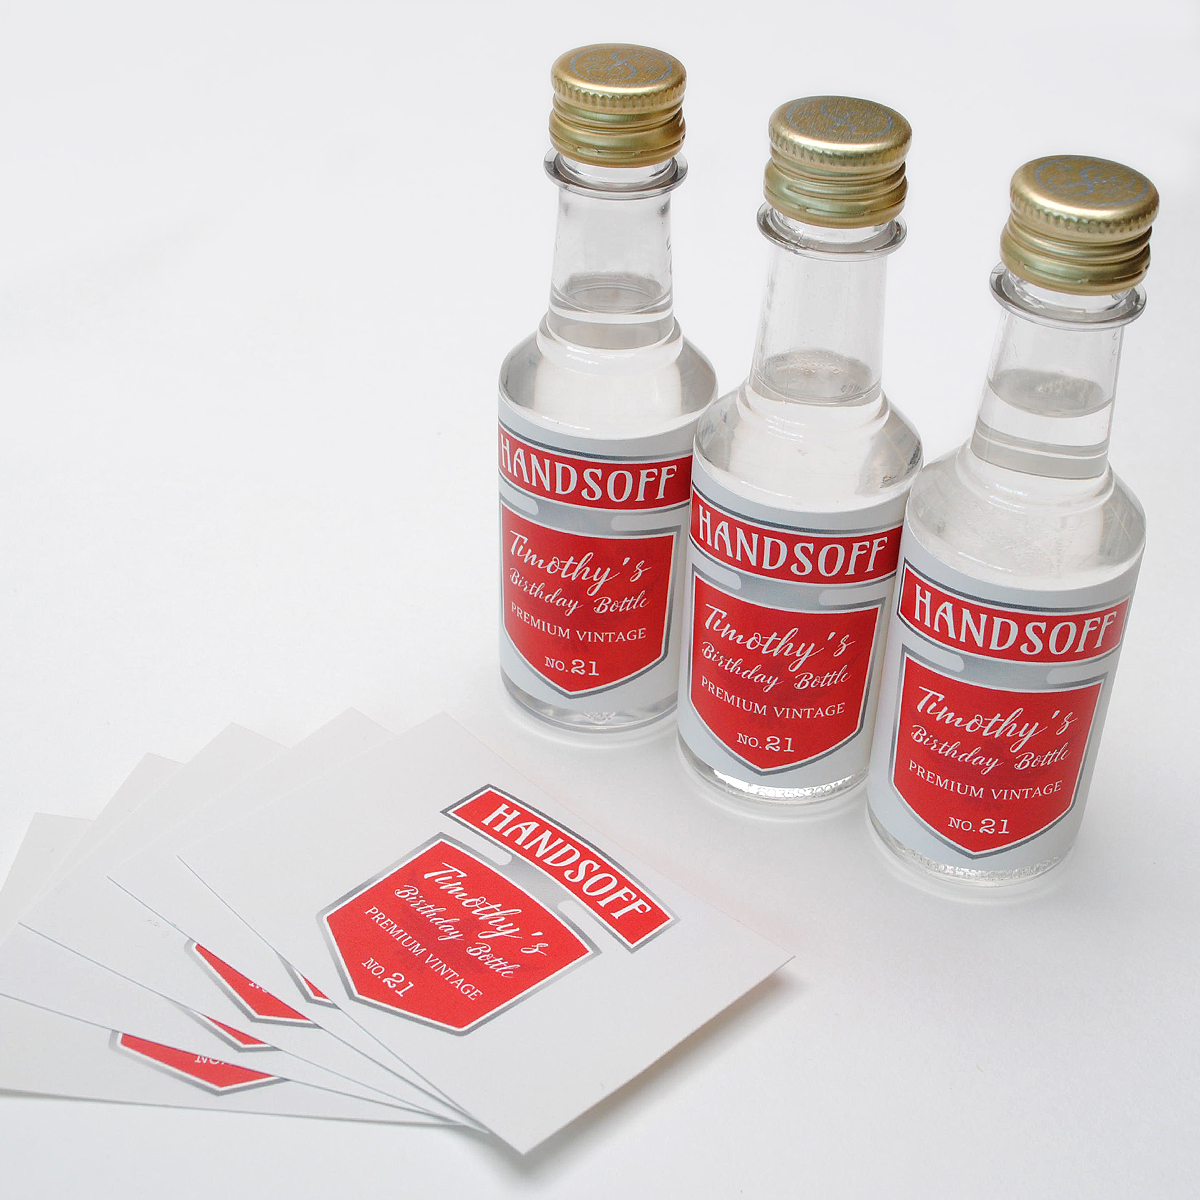 labels_for_mini_smirnoff_bottles.jpg